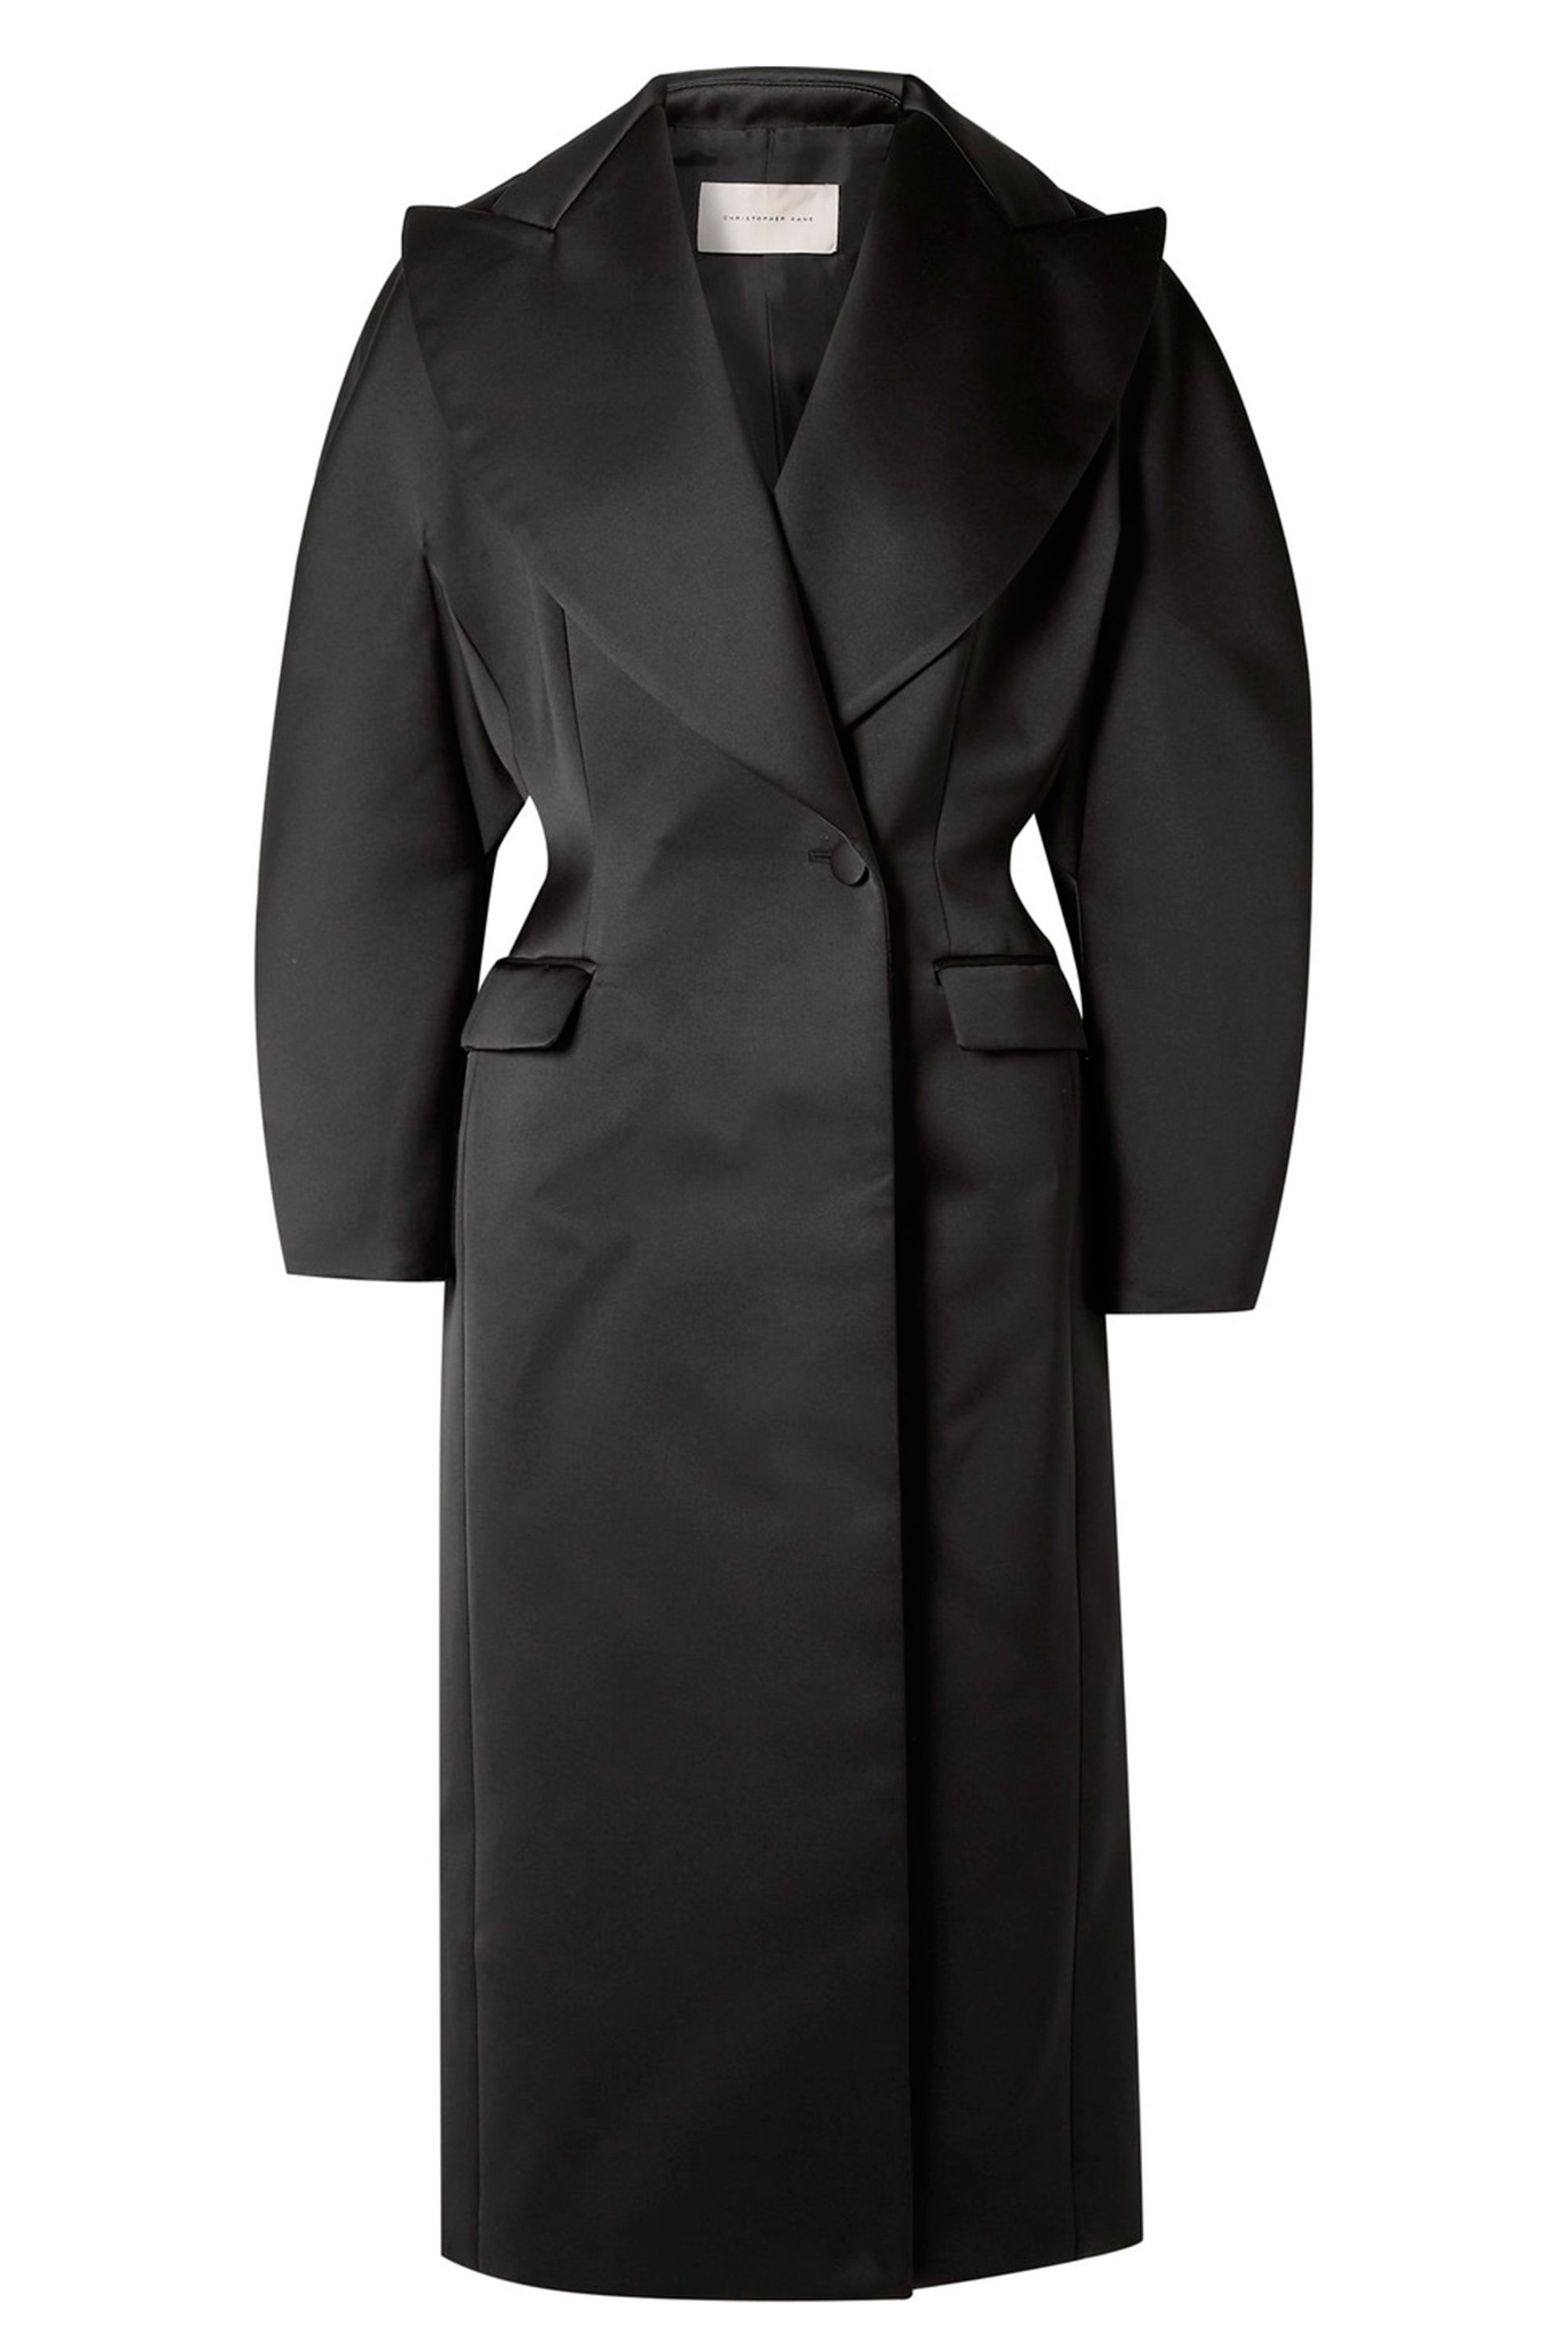 f7d325d92 Best winter coats 2019 – The best fall coats to buy now